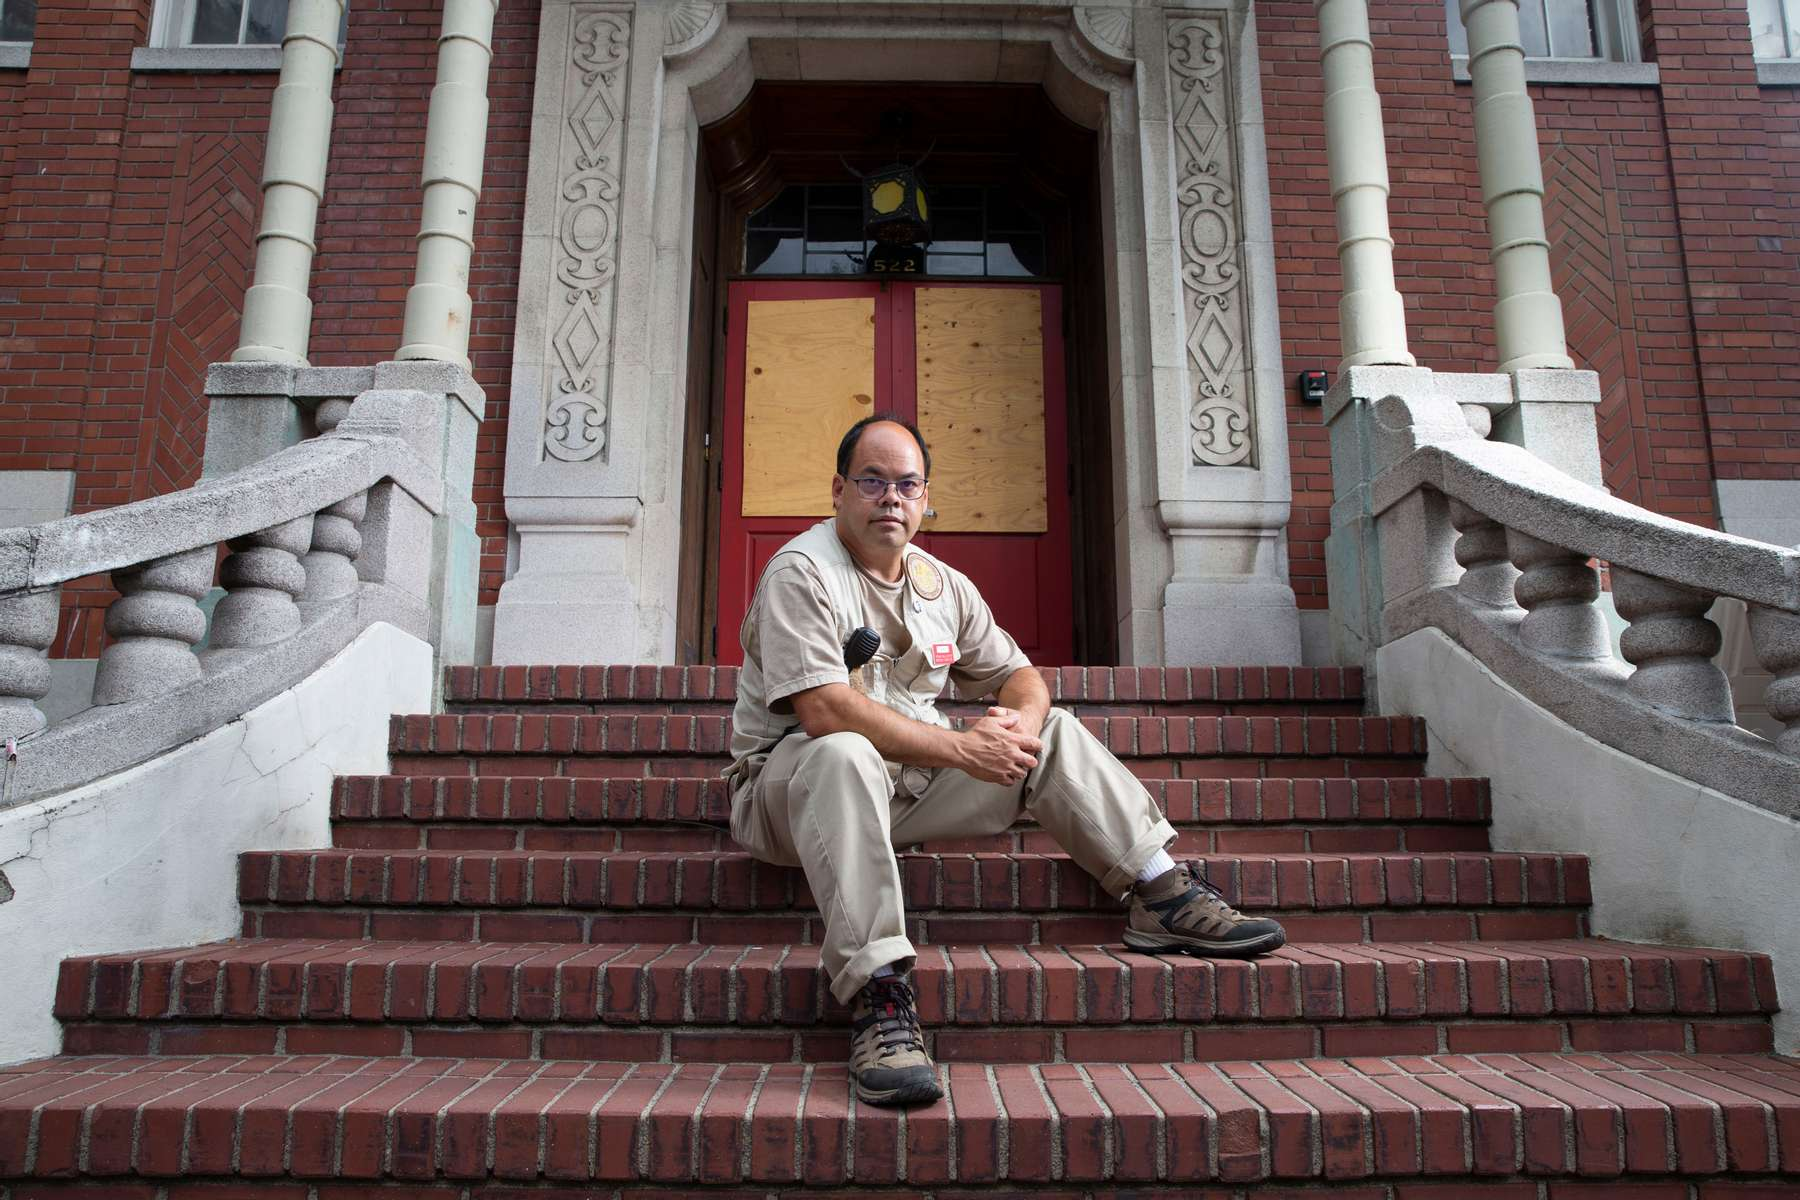 """Kay Chinn sits on the front steps of the Chong Wa Benevolent Association in the Chinatown - International District in Seattle, Washington on July 17, 2020. Kay was one of """"Donnie's Kids"""" as he grew up in the neighborhood in the 80's and participated in programs started by Donnie Chin, director of the International District Emergency Center (IDEC). At one time the  building housed the Chinese School. (Photo by Karen Ducey)"""